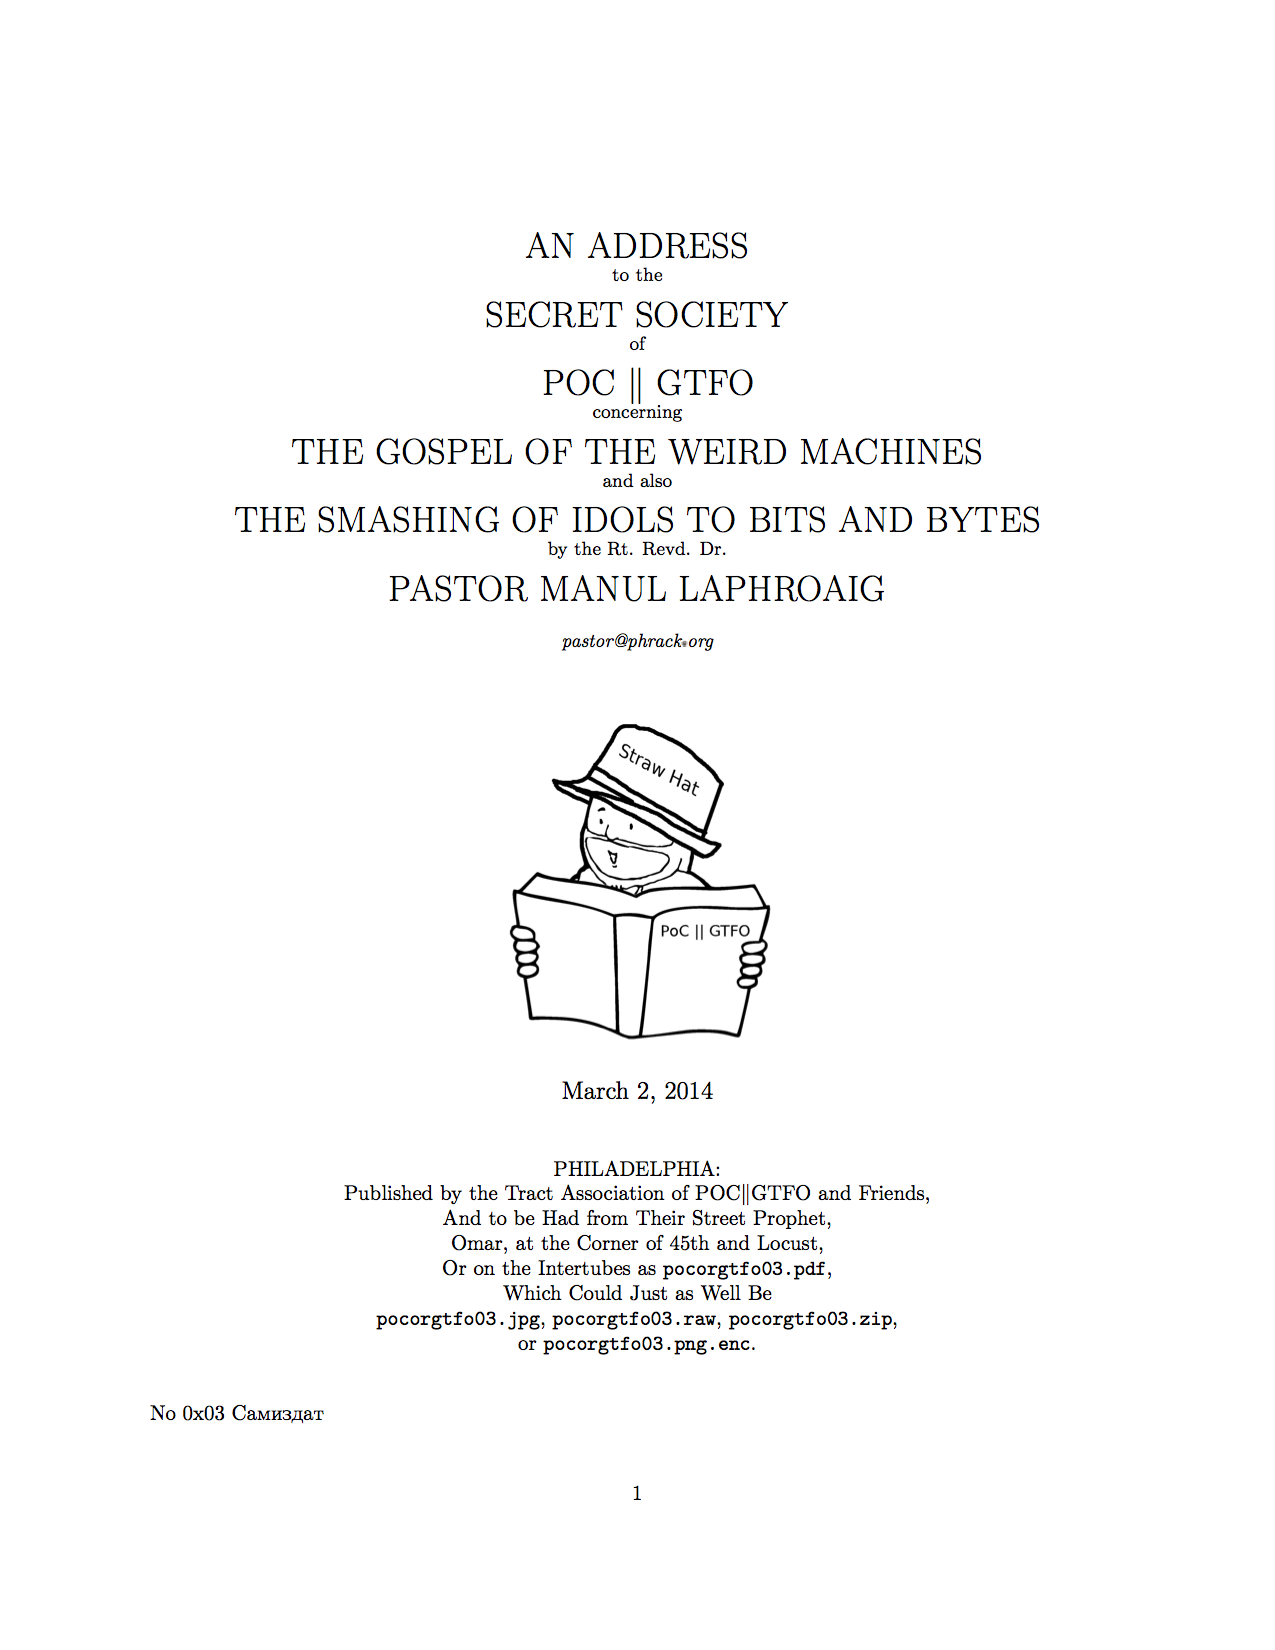 AN ADDRESS to the SECRET SOCIETY of POC $\|$ GTFO concerning THE GOSPEL OF THE WEIRD MACHINES and also THE SMASHING OF IDOLS TO BITS AND BYTES by the Rt. Revd. Dr. PASTOR MANUL LAPHROAIG